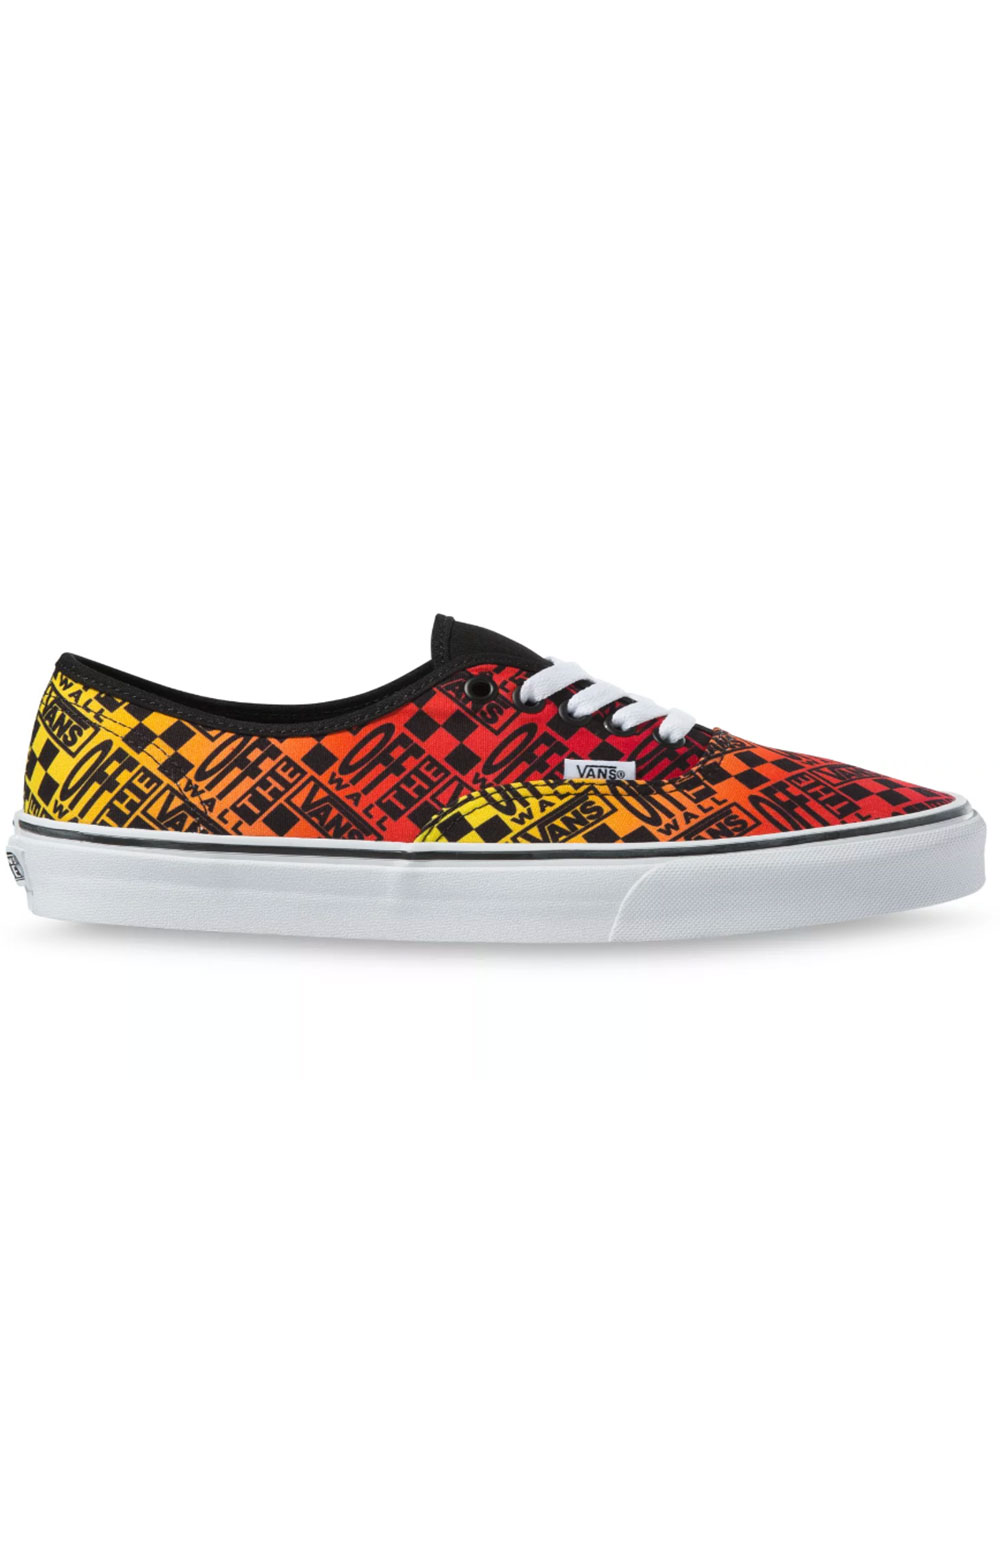 (48A2N5) Logo Flame Authentic Shoes - Black/True White